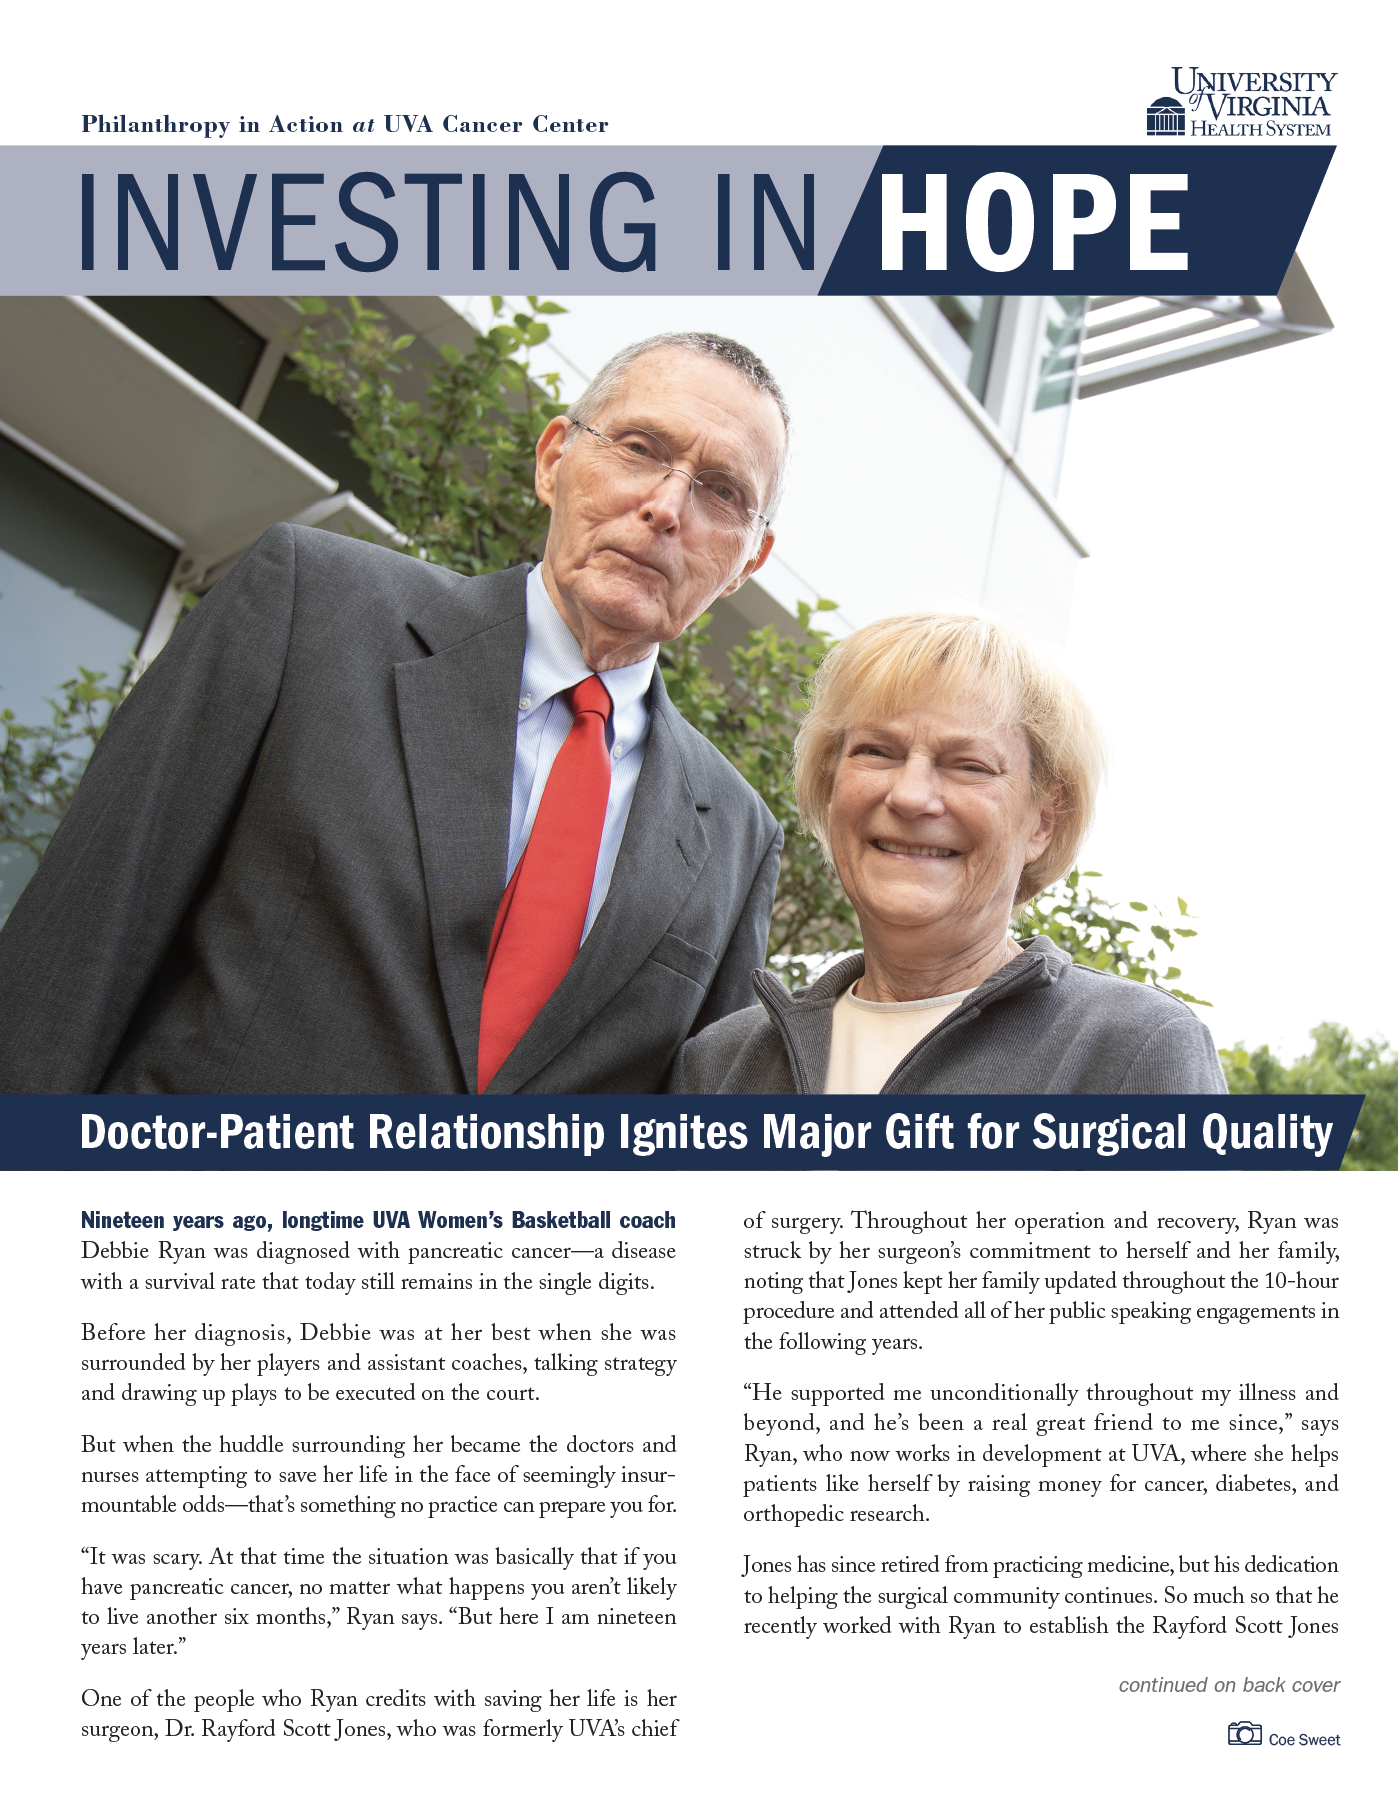 Thumbnail of the cover of the print issue of Investing in Hope